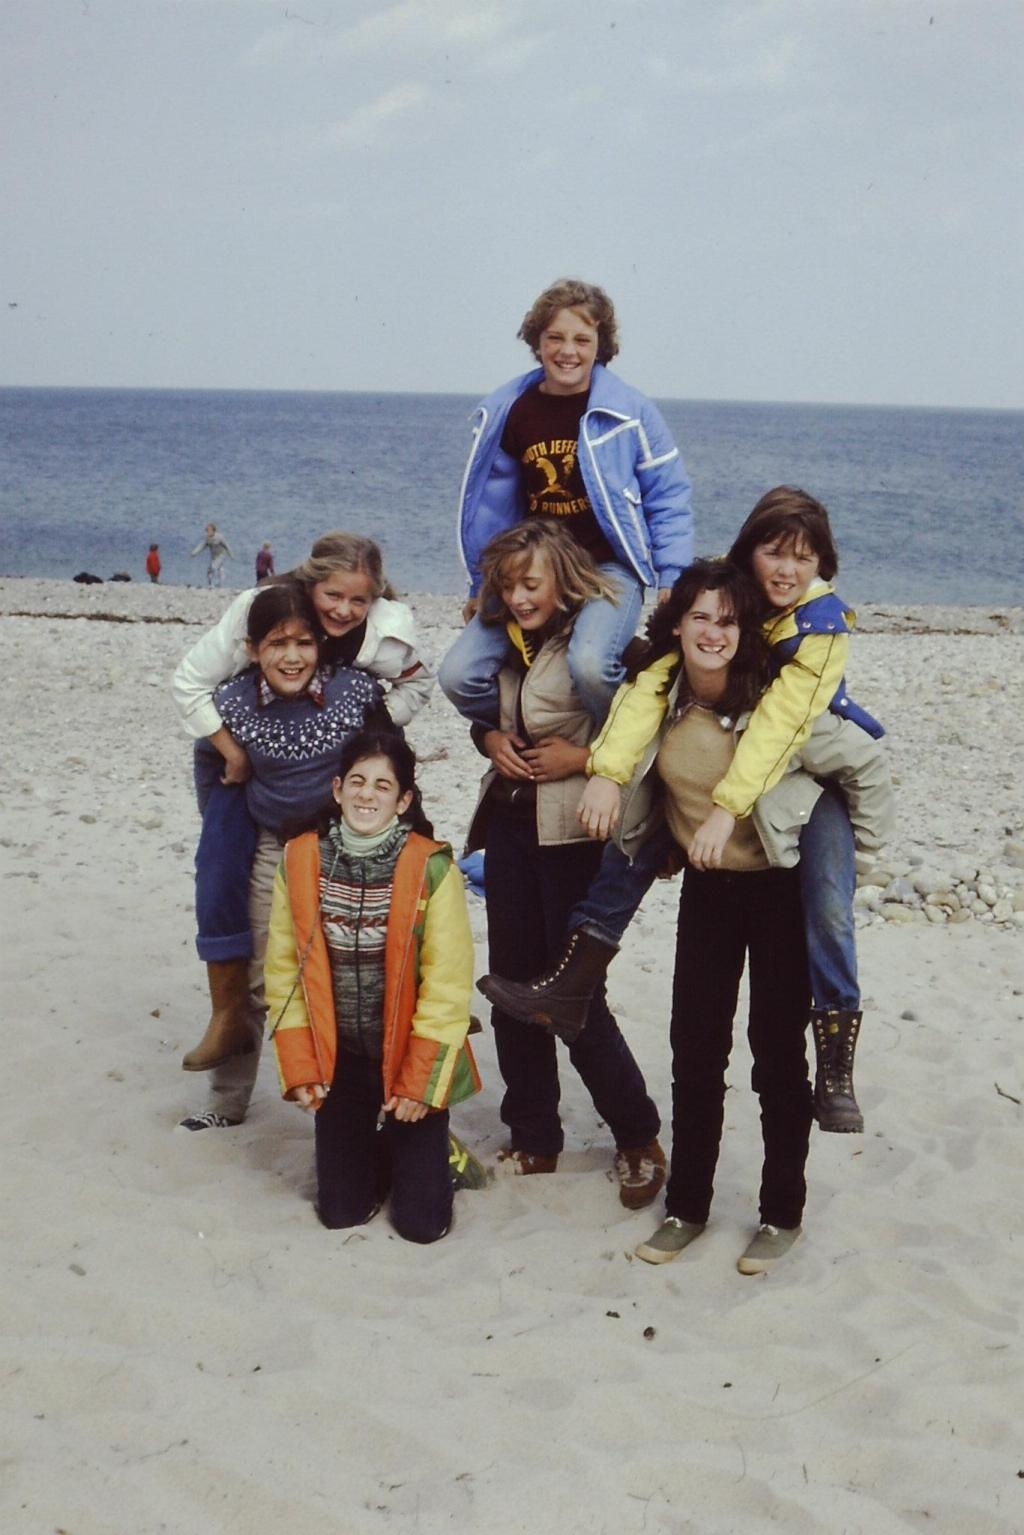 I'm in love with all their boots and winter coats and sweaters. Definitely Massachusetts, early 1980s.